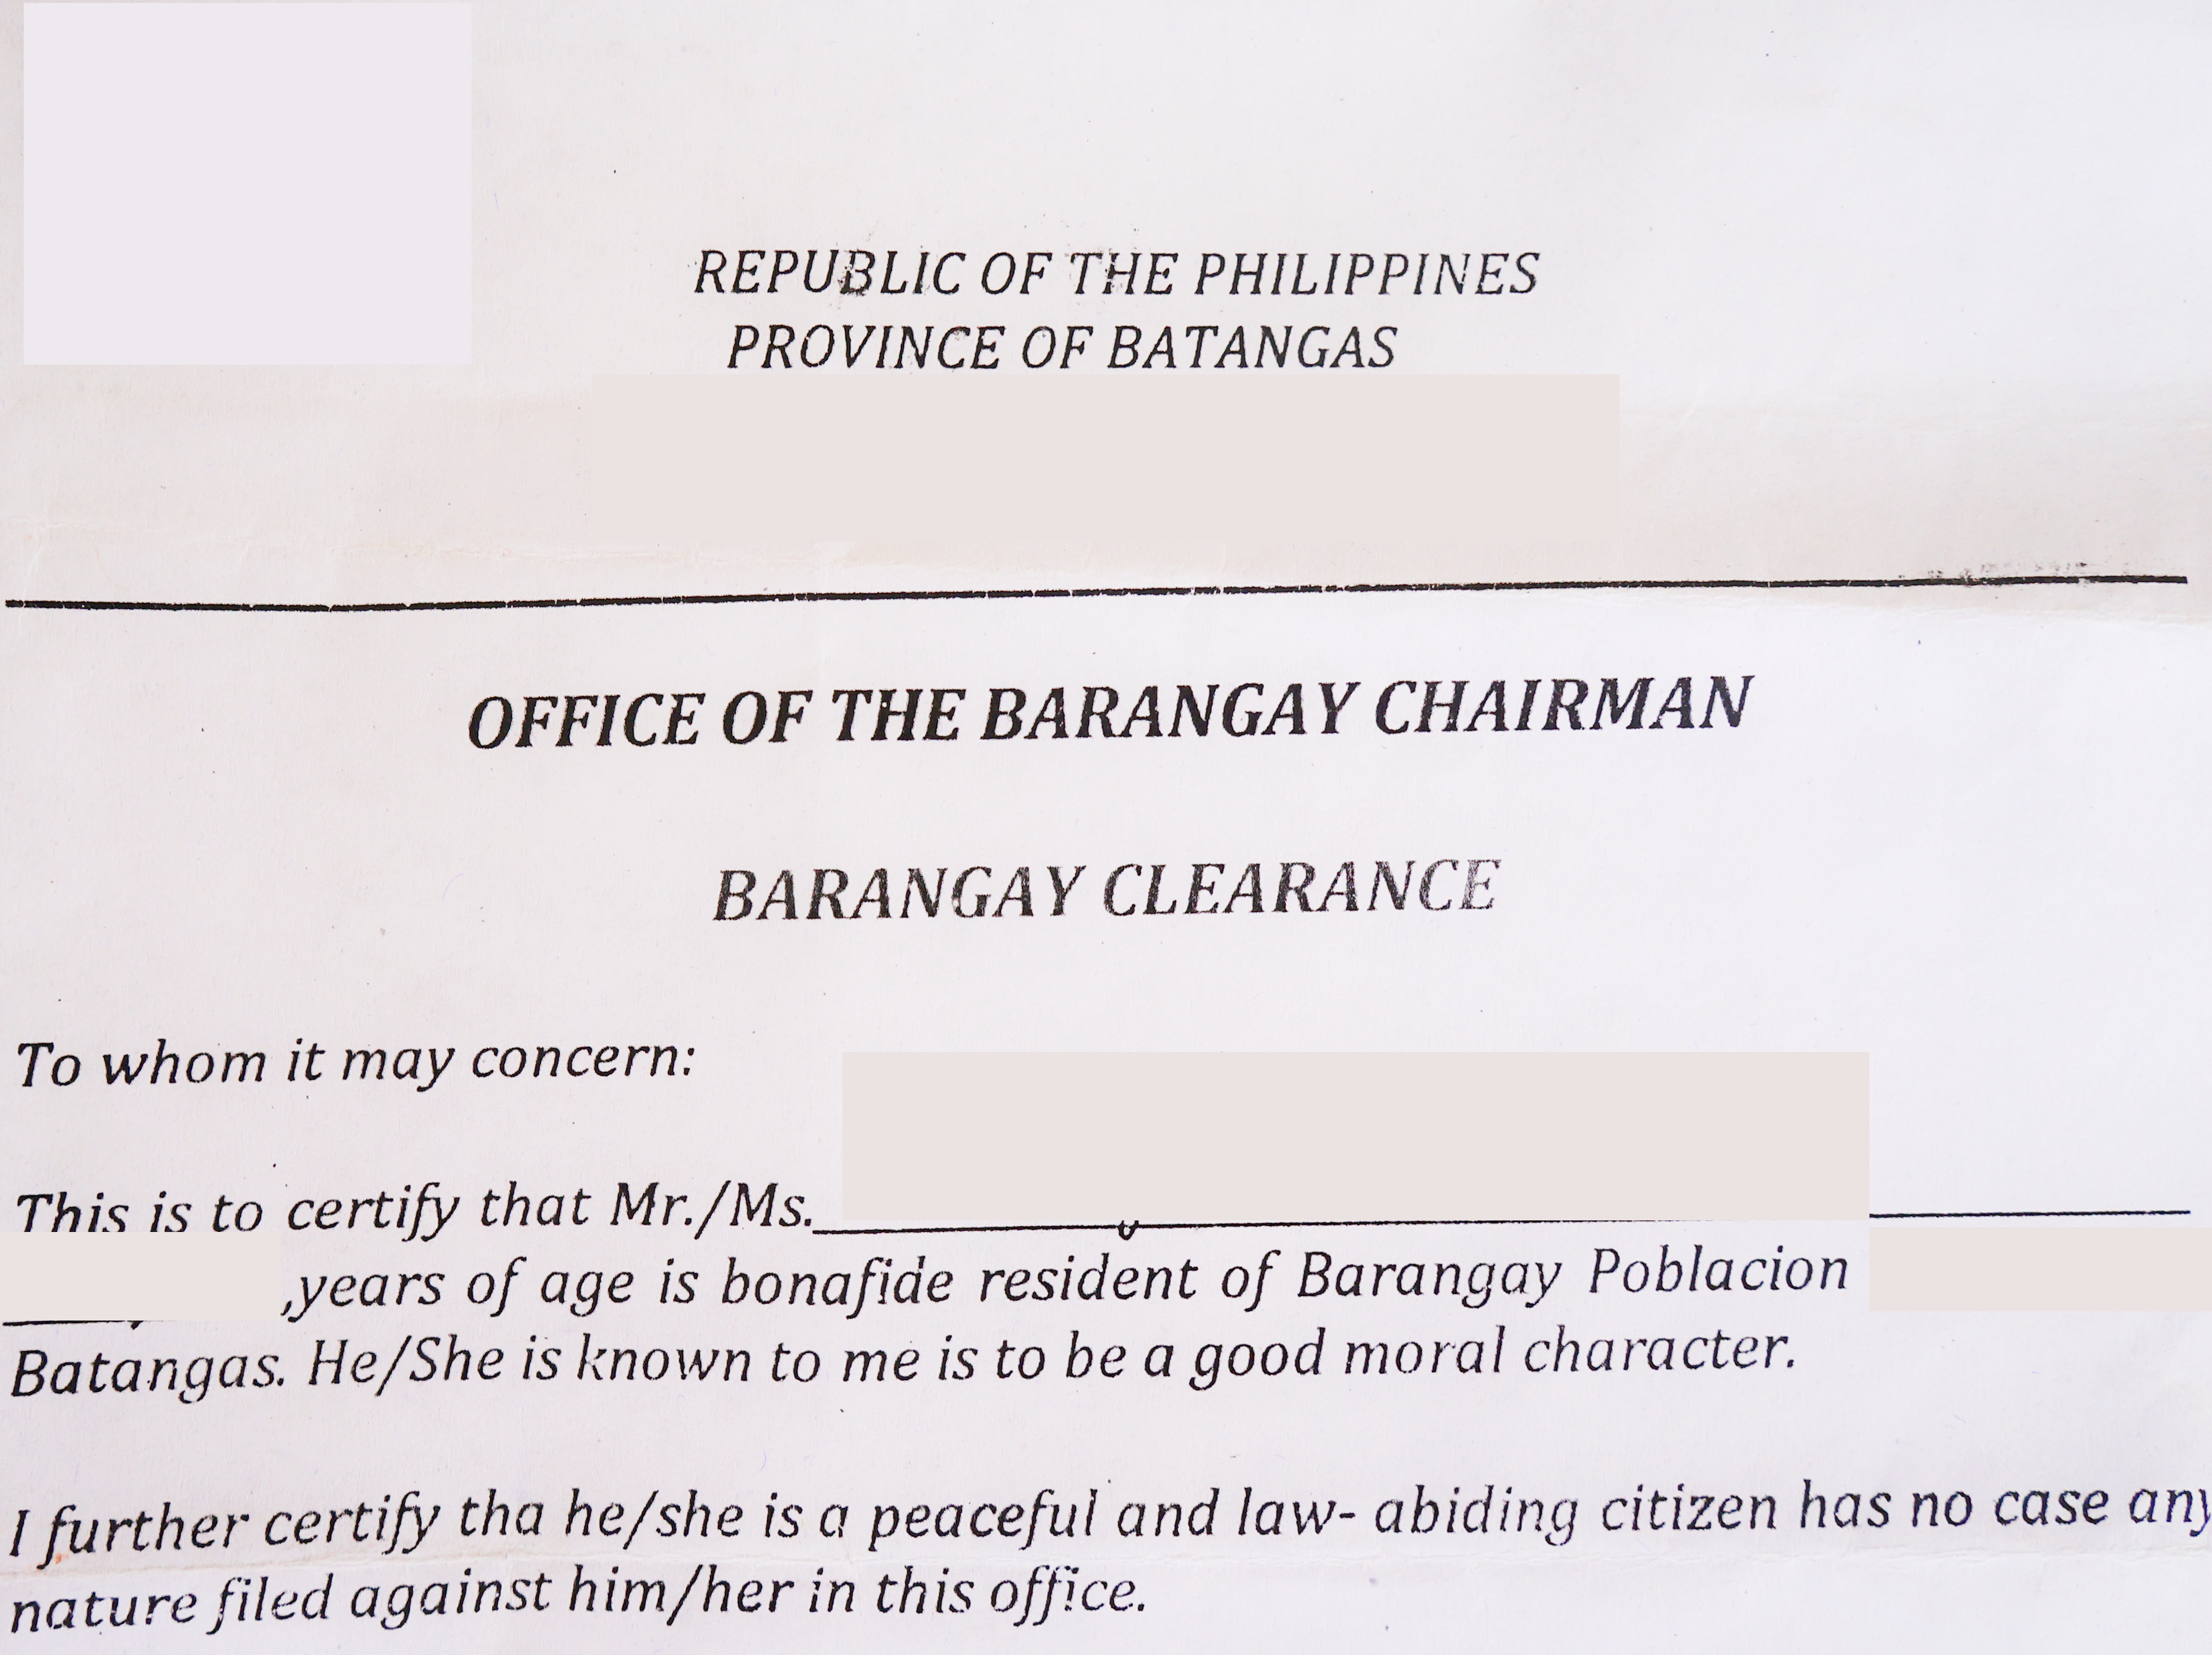 How To Get a Barangay Clearance in the Philippines3